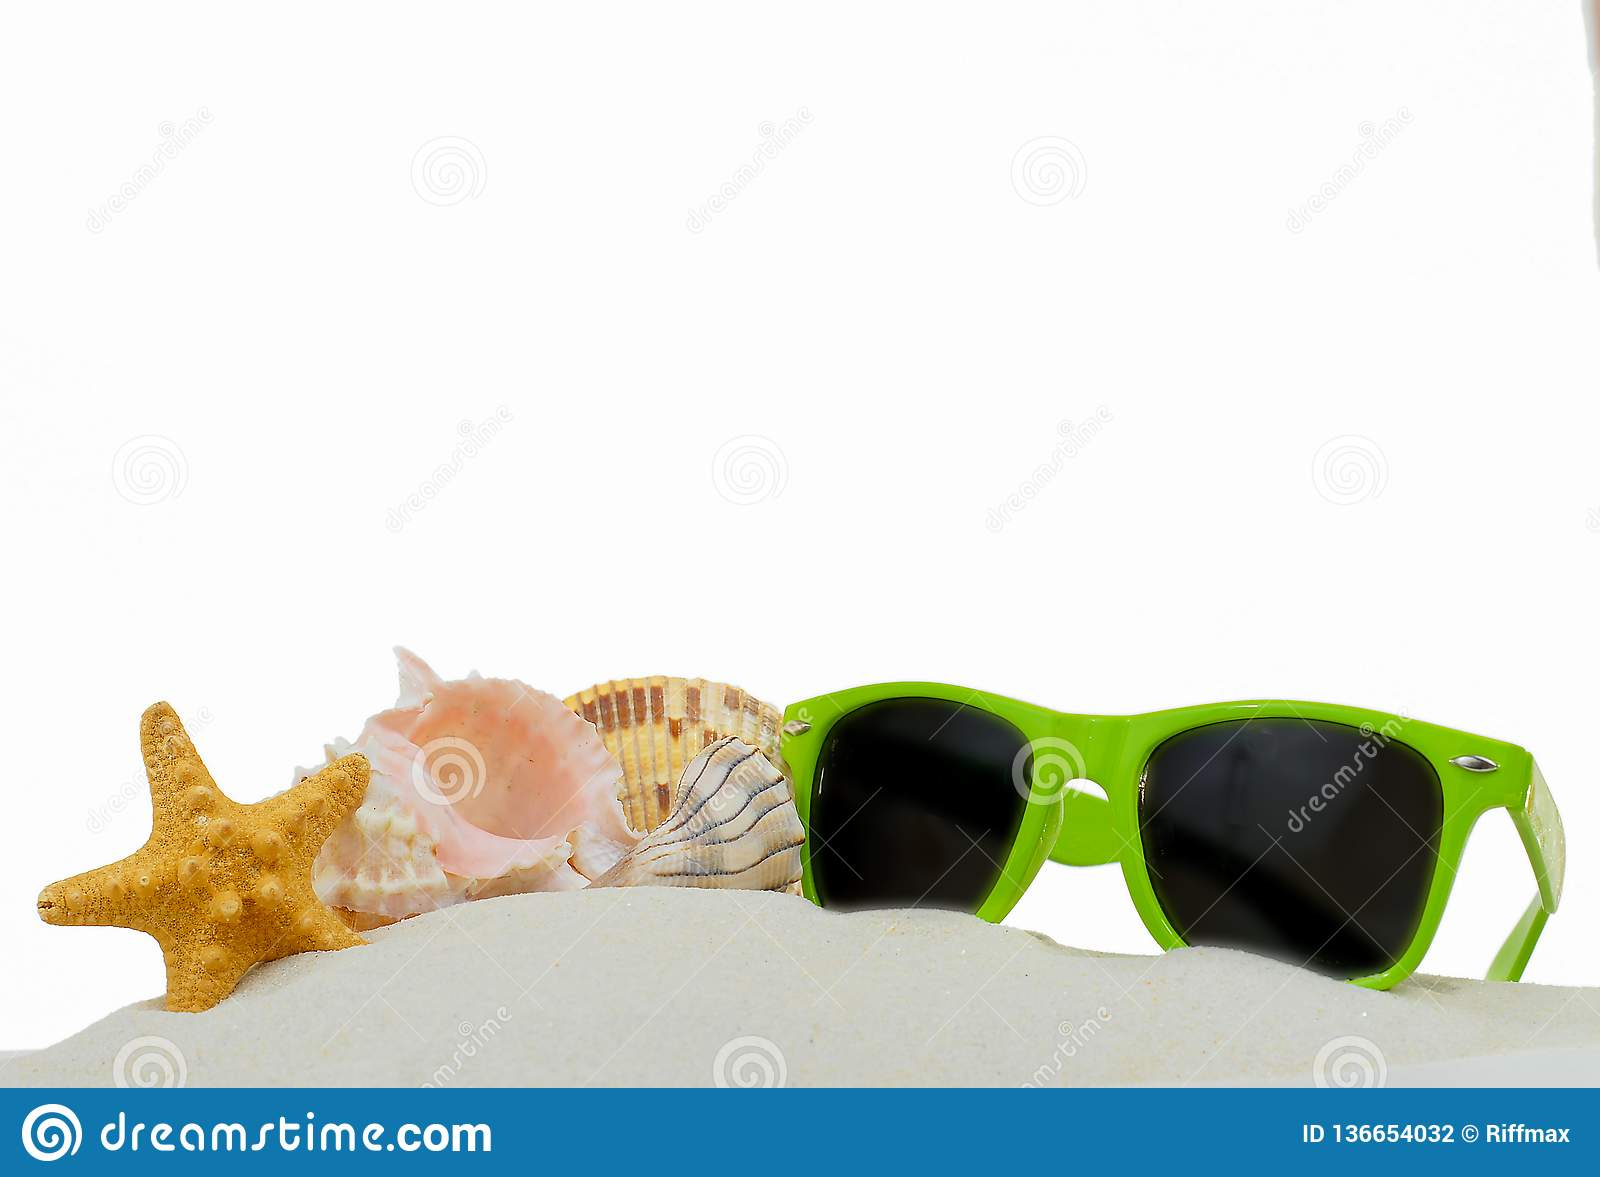 Summertime lower border image of starfish, shells and bright green sunglasses piled on sand. Isolated on white.